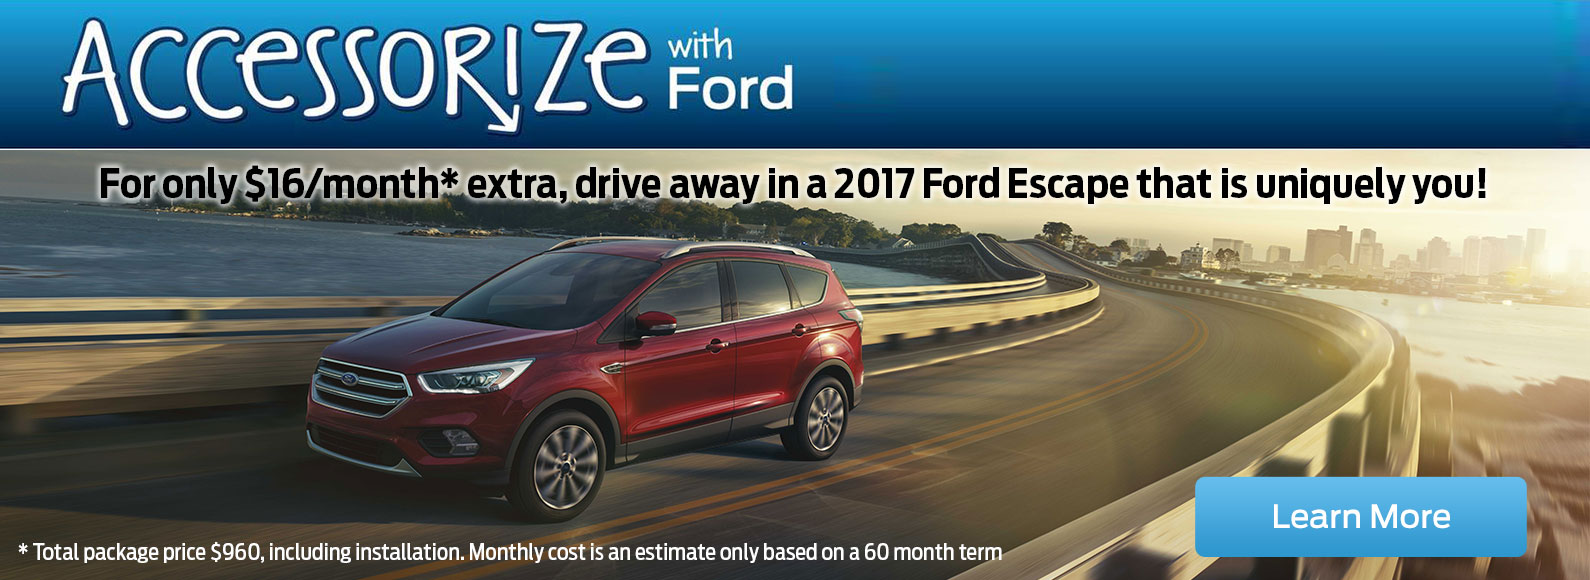 Accessorize your 2017 Ford Escape for only $16/month